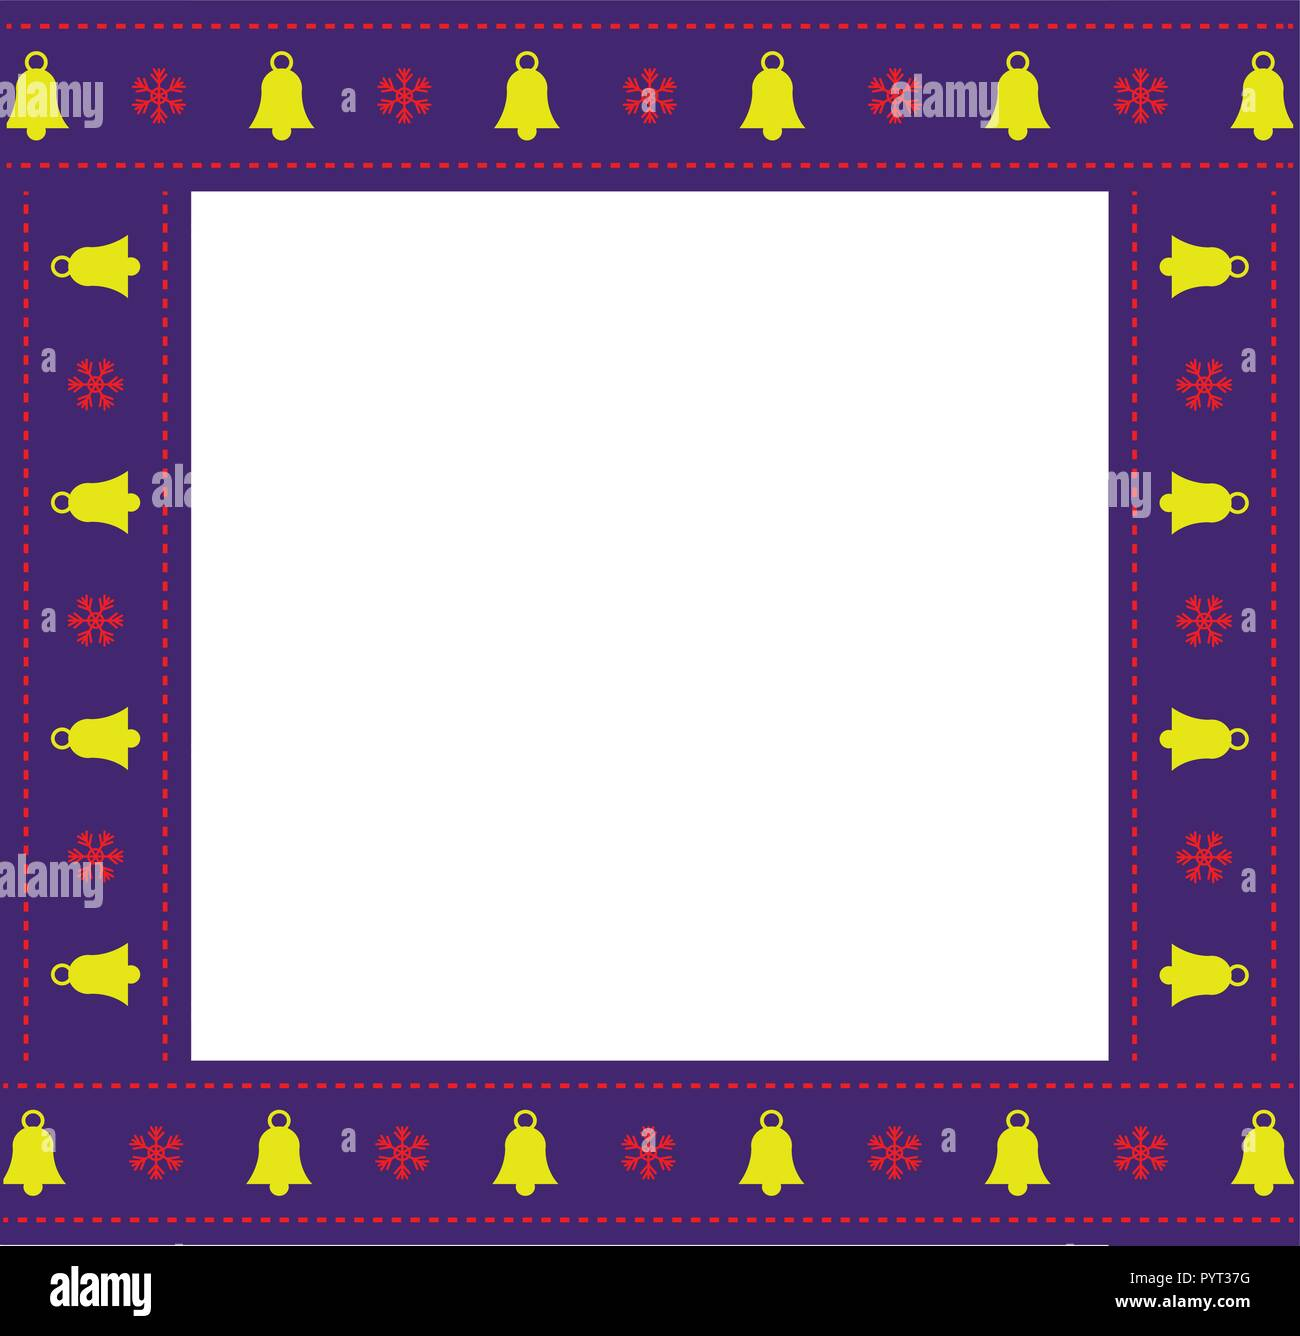 cute christmas or new year festive square border photo frame with bells and snowflakes lace pattern on ribbon isolated on white background vector il